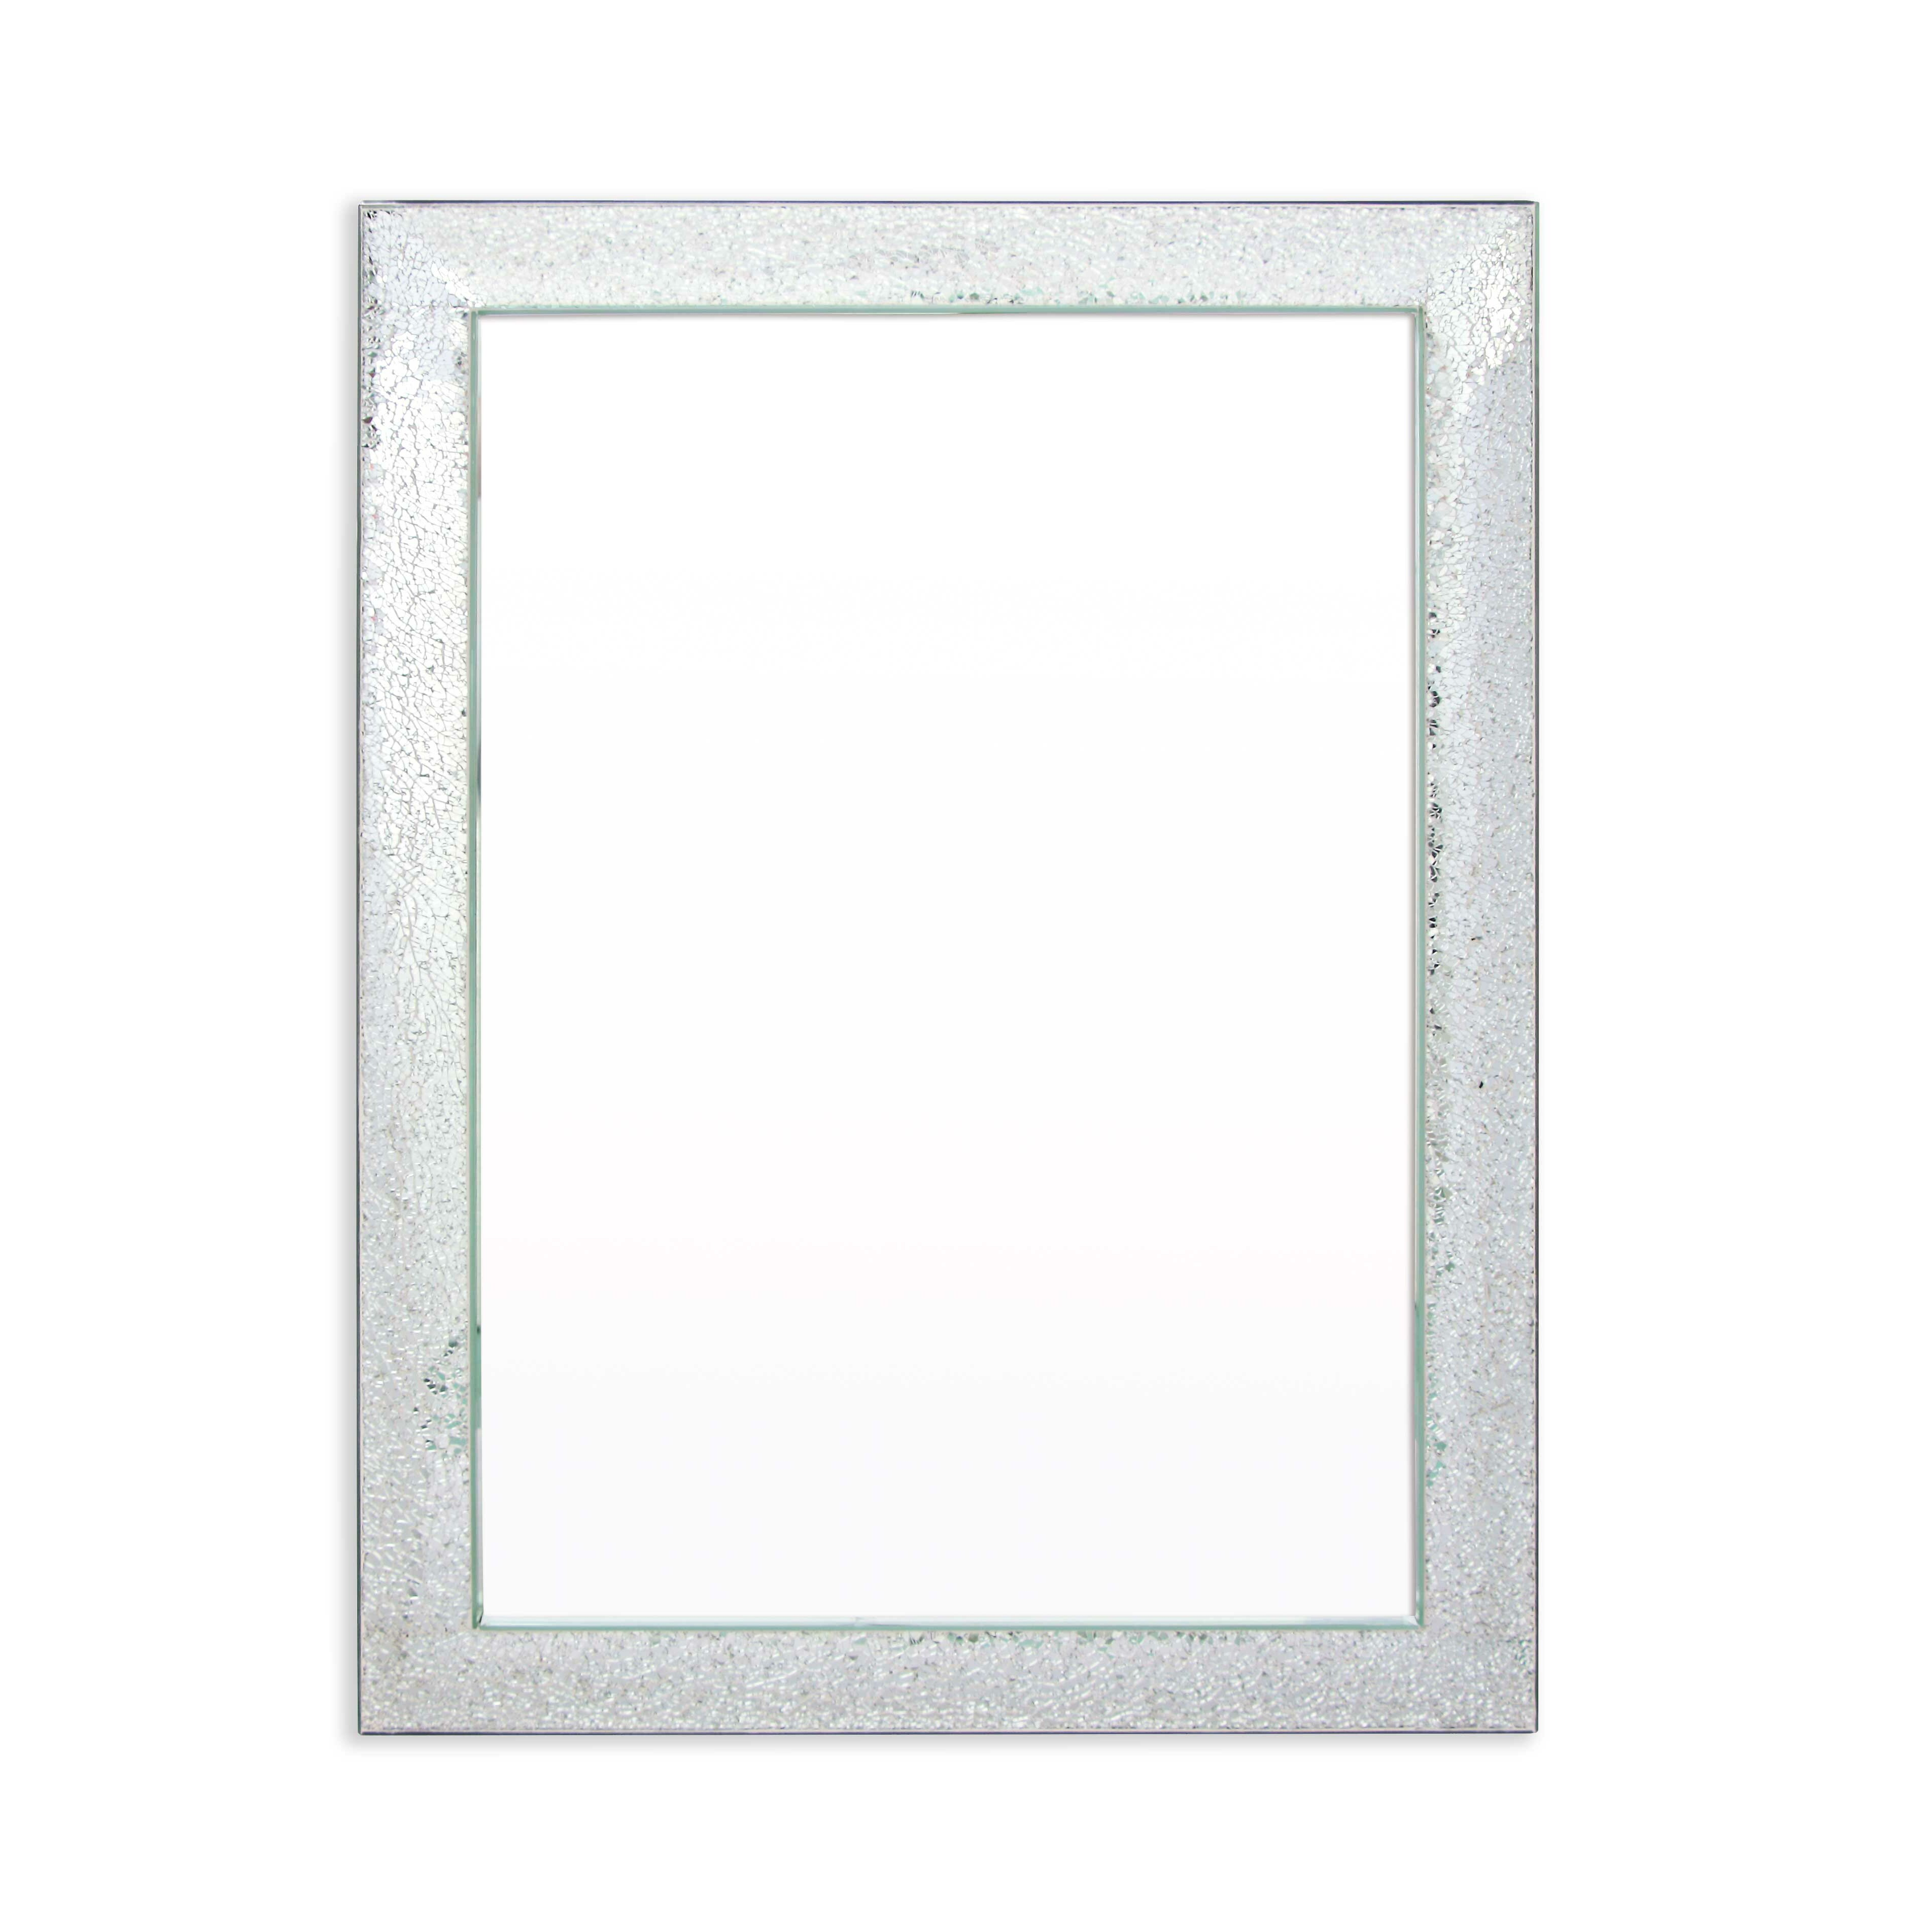 Selections by chaumont deluxe mosaic glass rectangle for Rectangle mirror